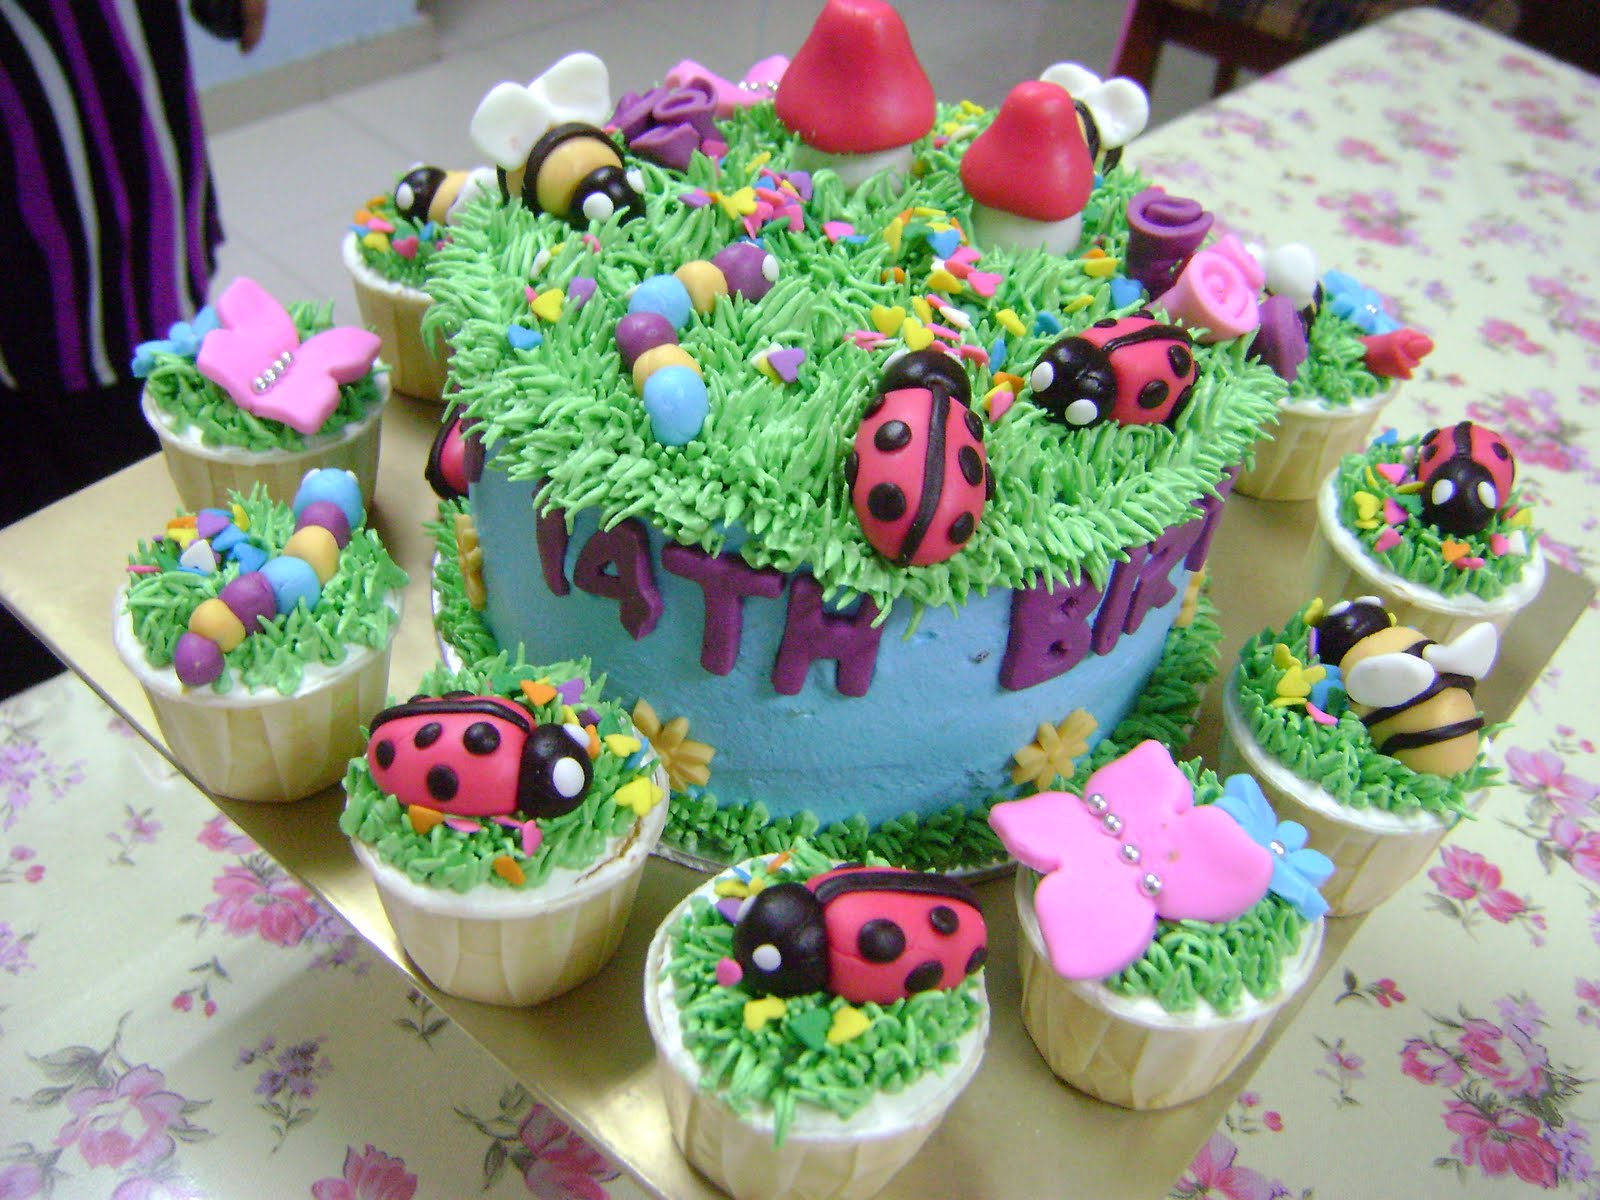 images of cakes with garden theme - photo #16